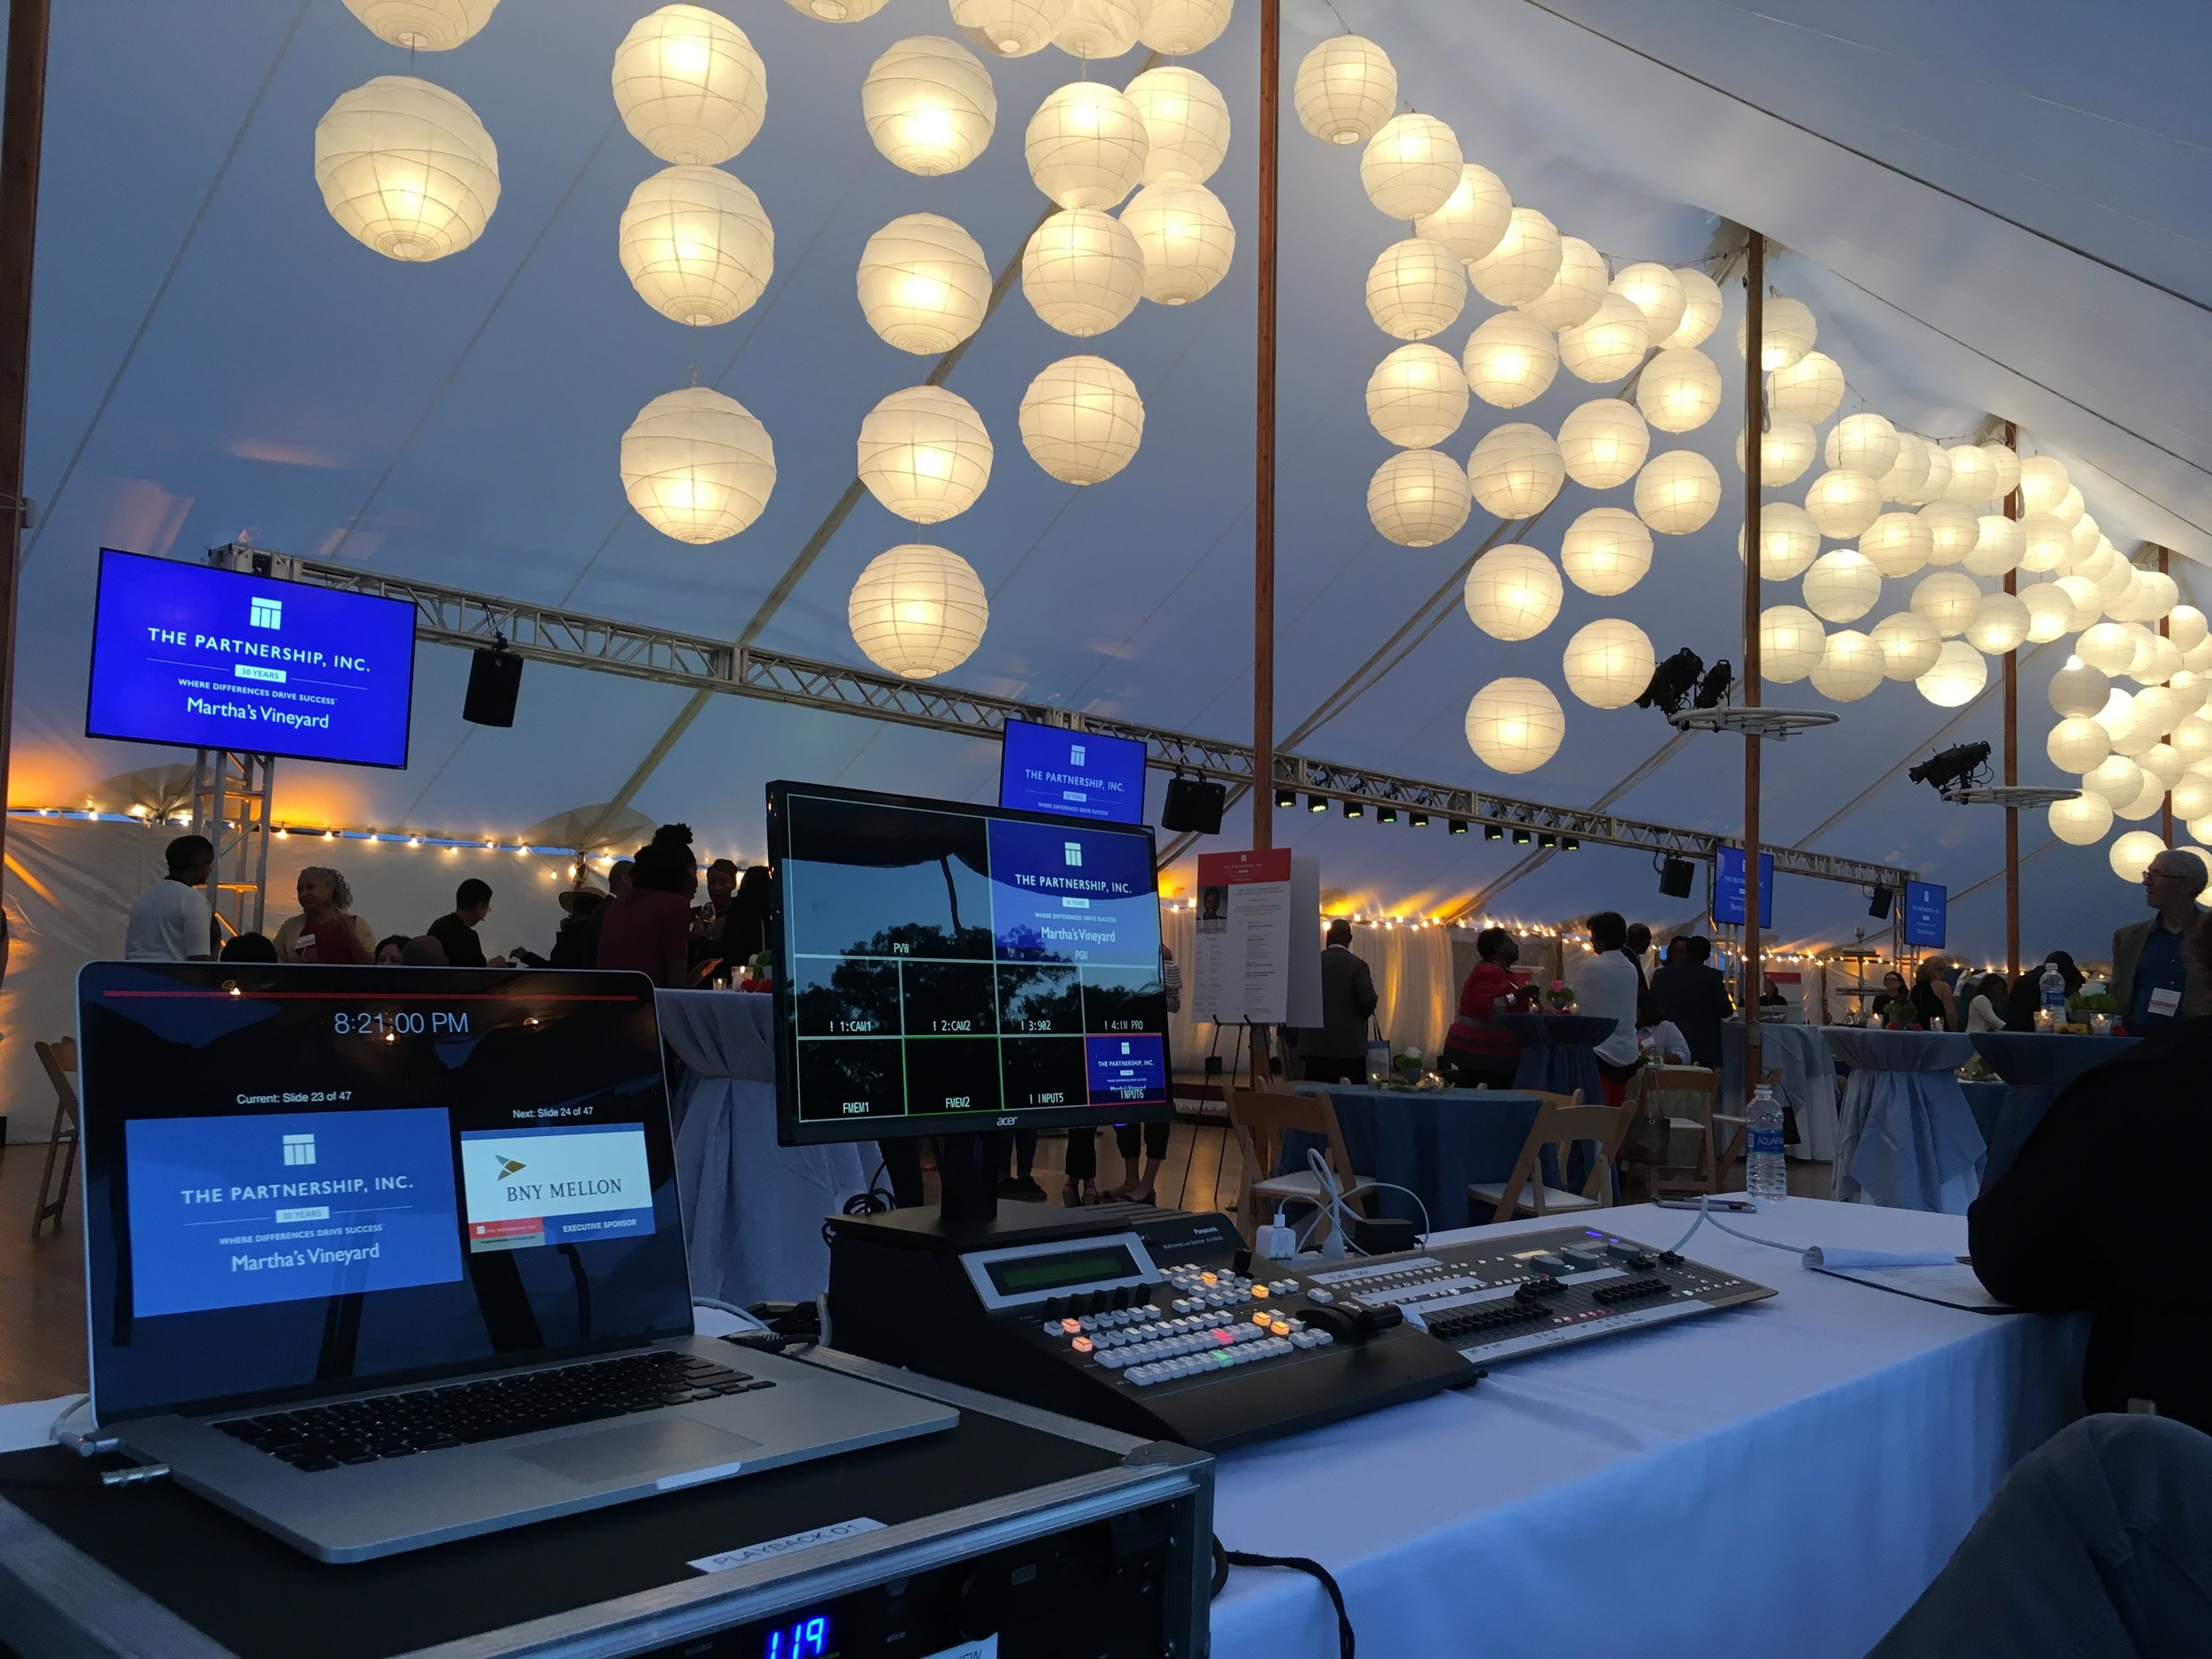 Video screens, audio and lighting supported by a truss structure for a diversity summit